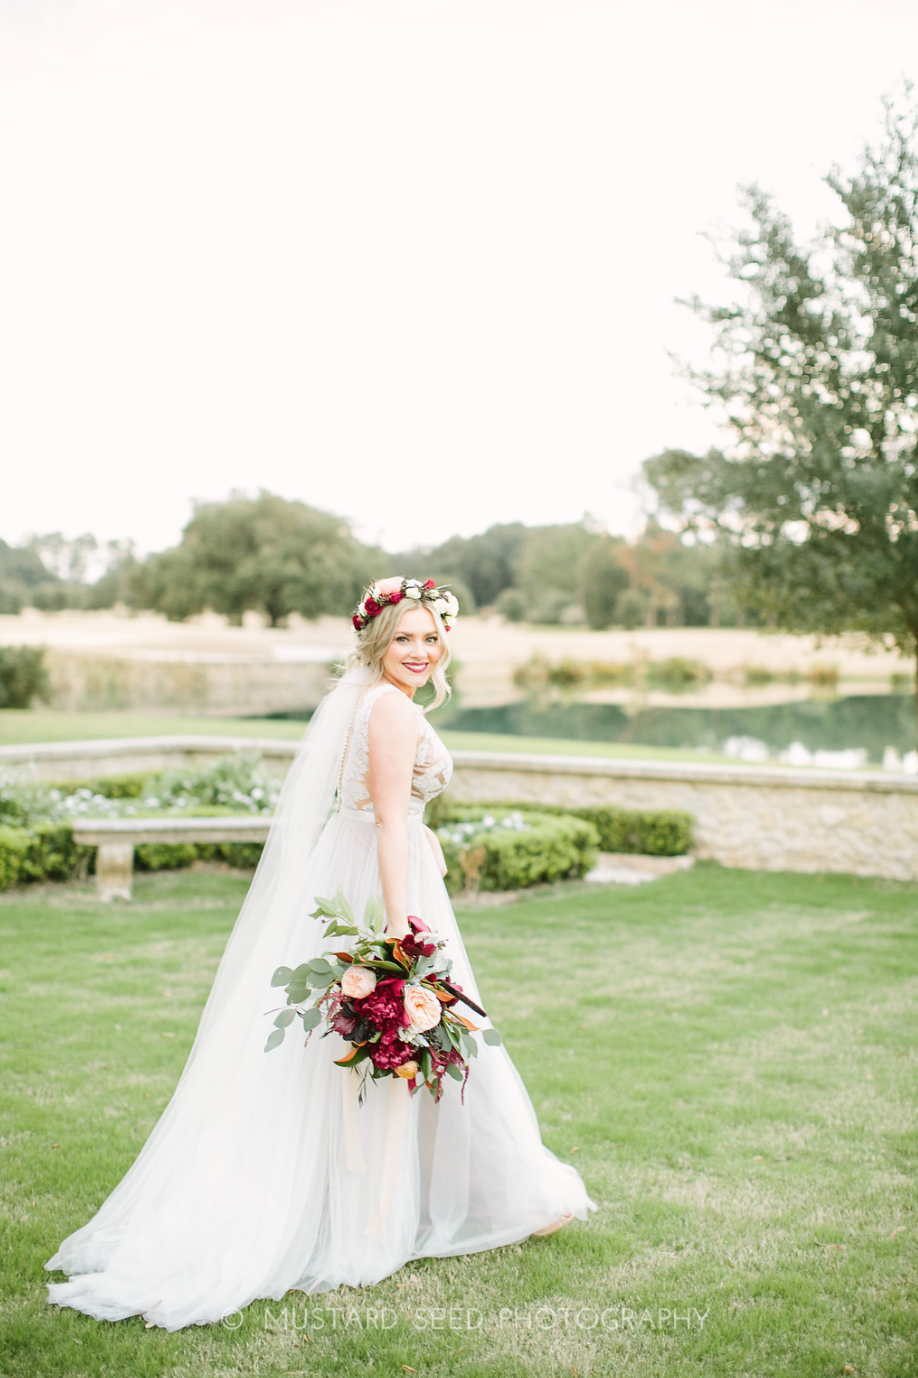 Bridal Bouquet and Floral Crown on bride at Houston Oaks Country Club